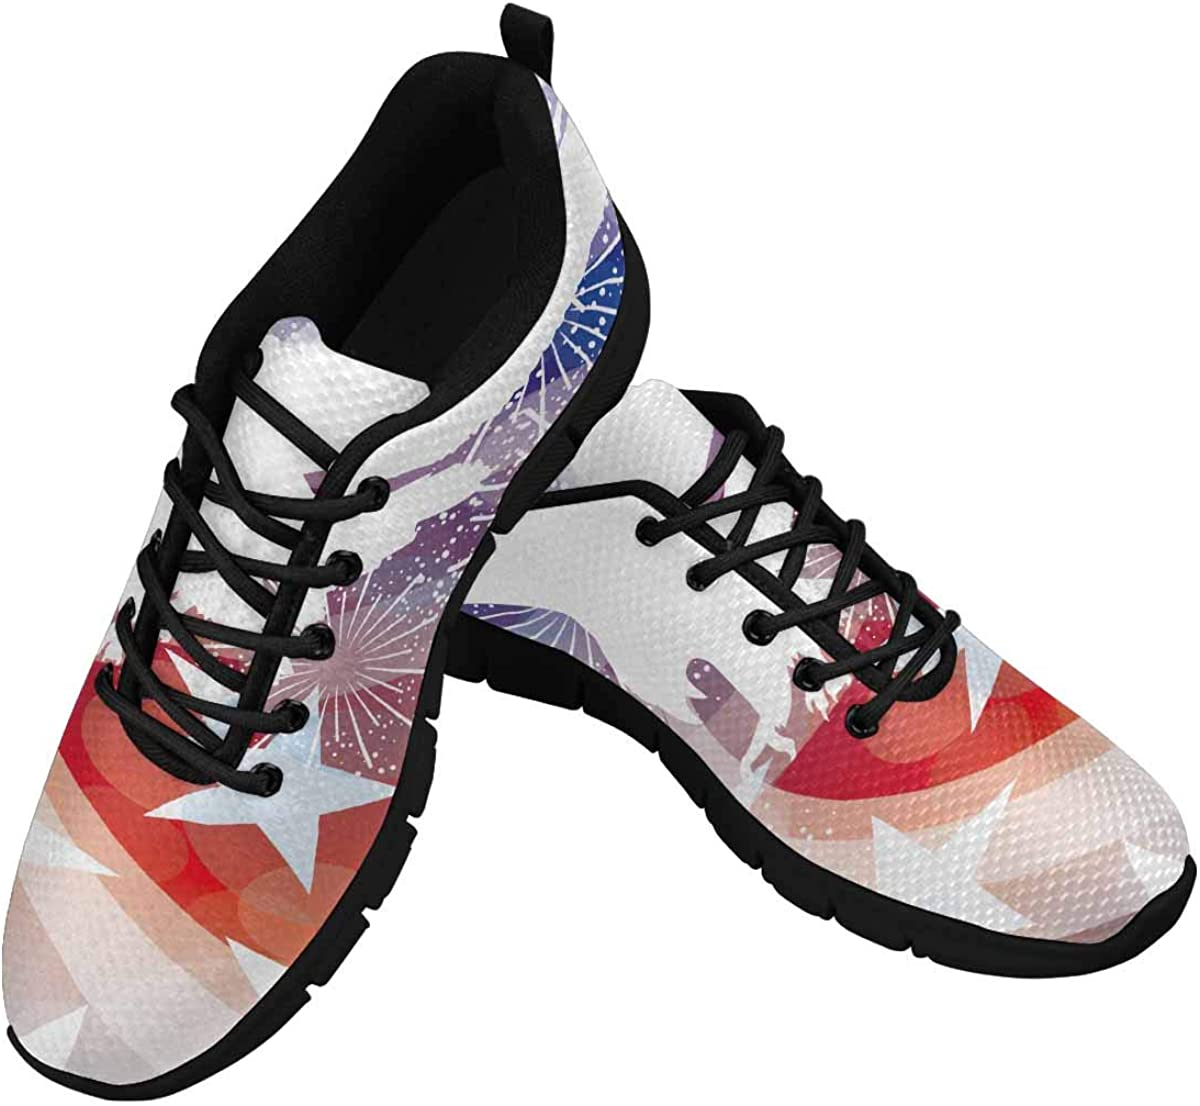 INTERESTPRINT Stars and Stripes with Eagle Women's Lightweight Athletic Casual Gym Sneakers